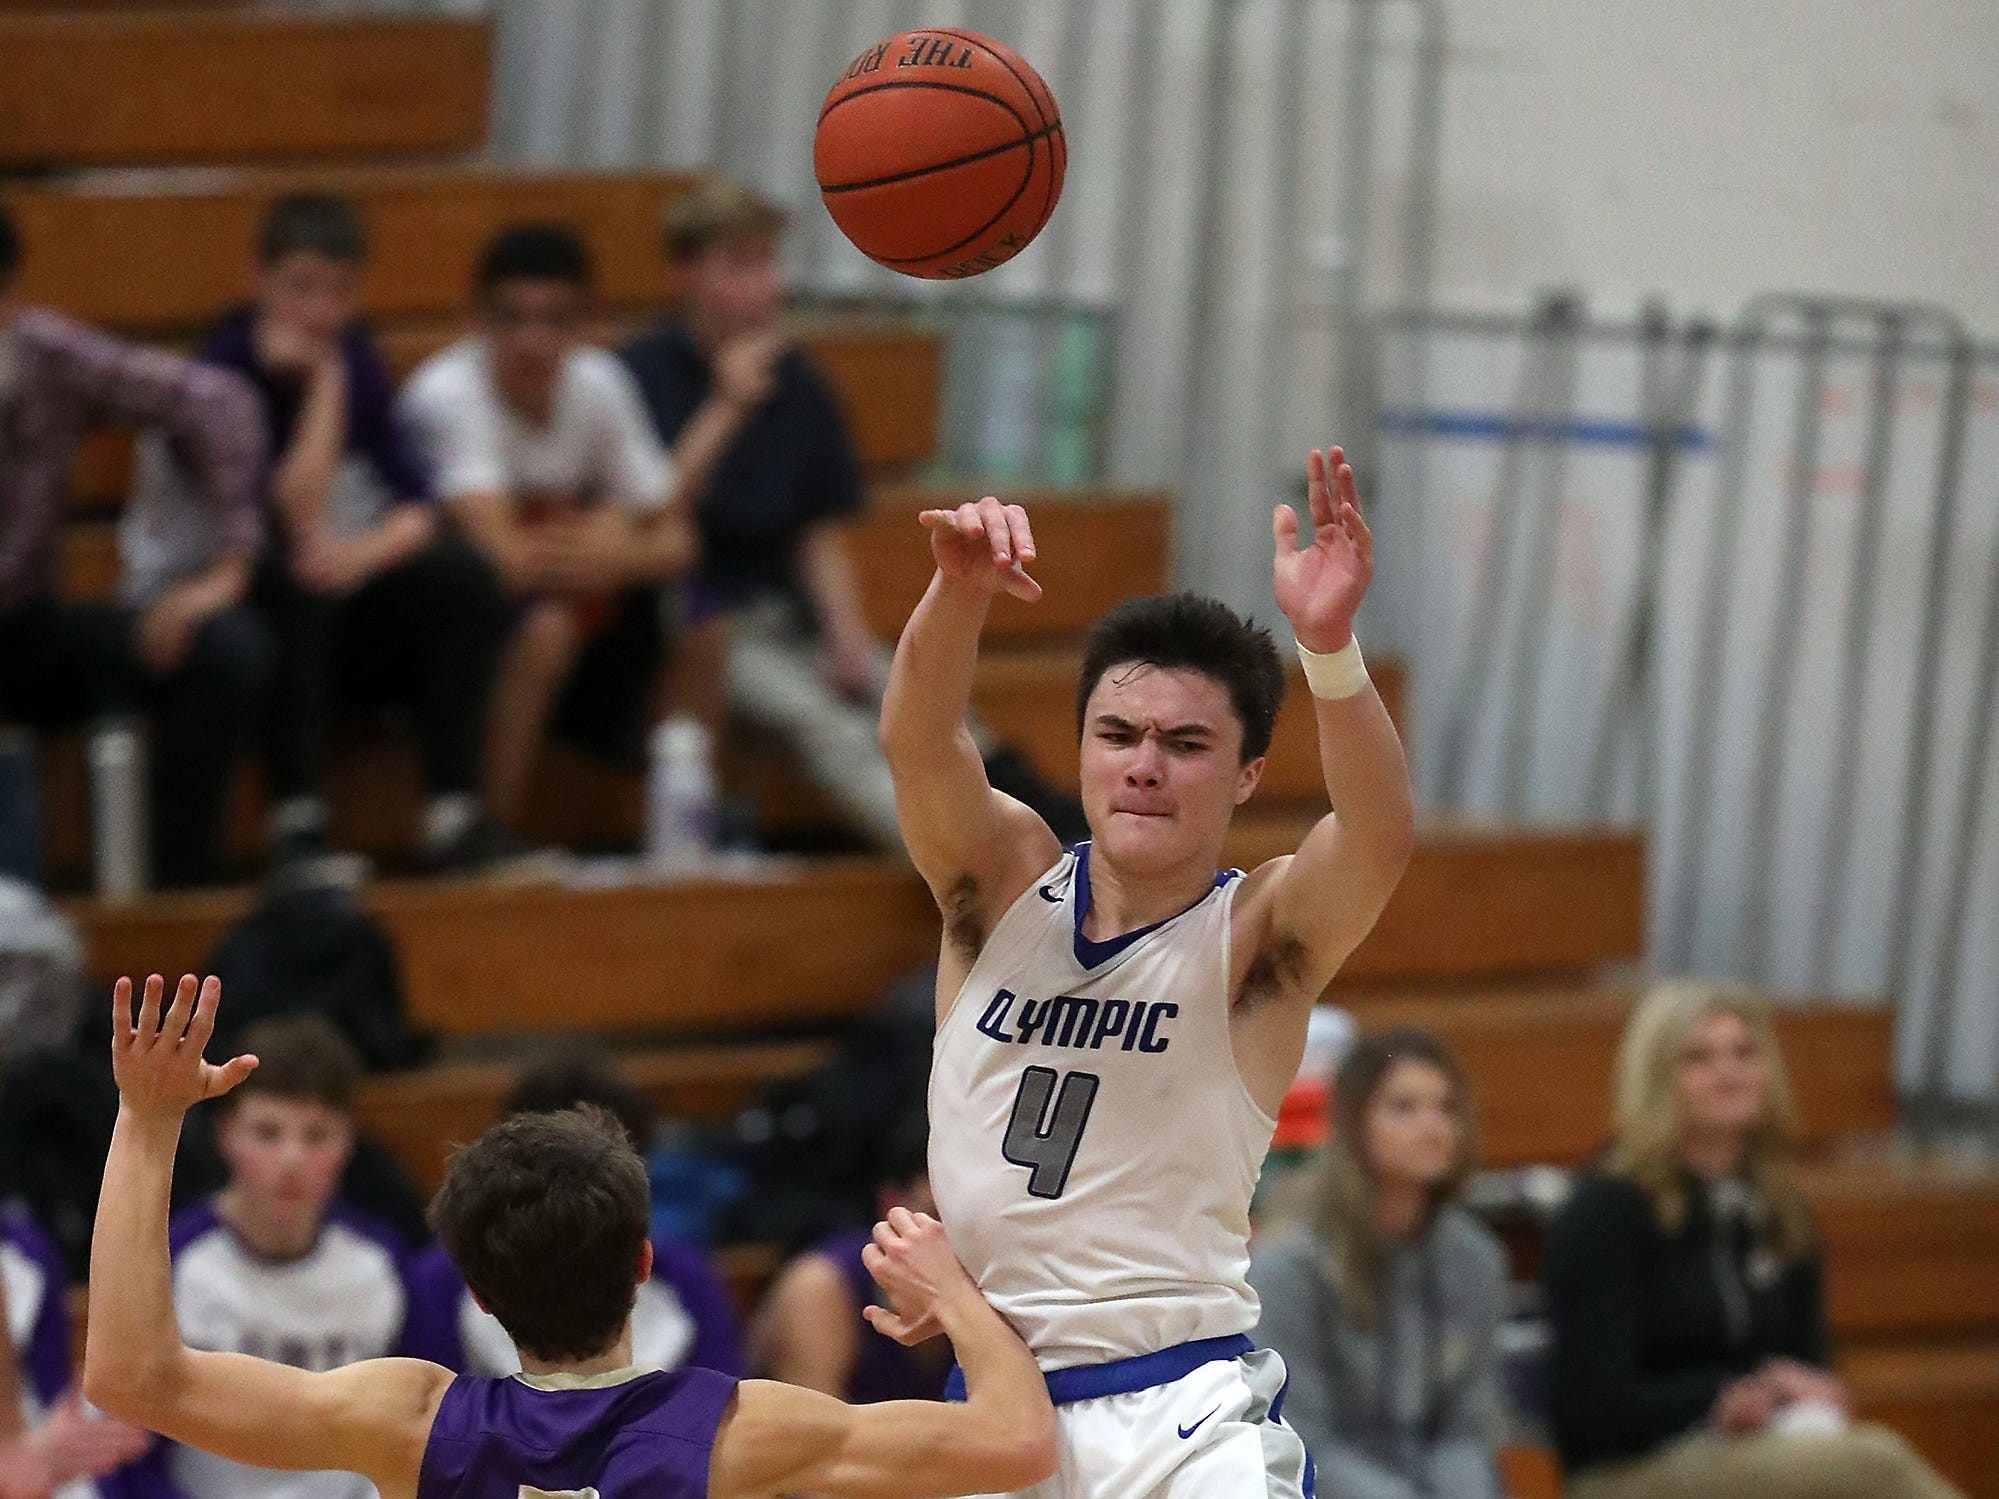 Olympic's Brandon Barron (4) makes a pass over North Kitsap's Grant Baker (3) to Greg Brehmer during the second half of their game at Olympic High on Friday, December 14, 2018.